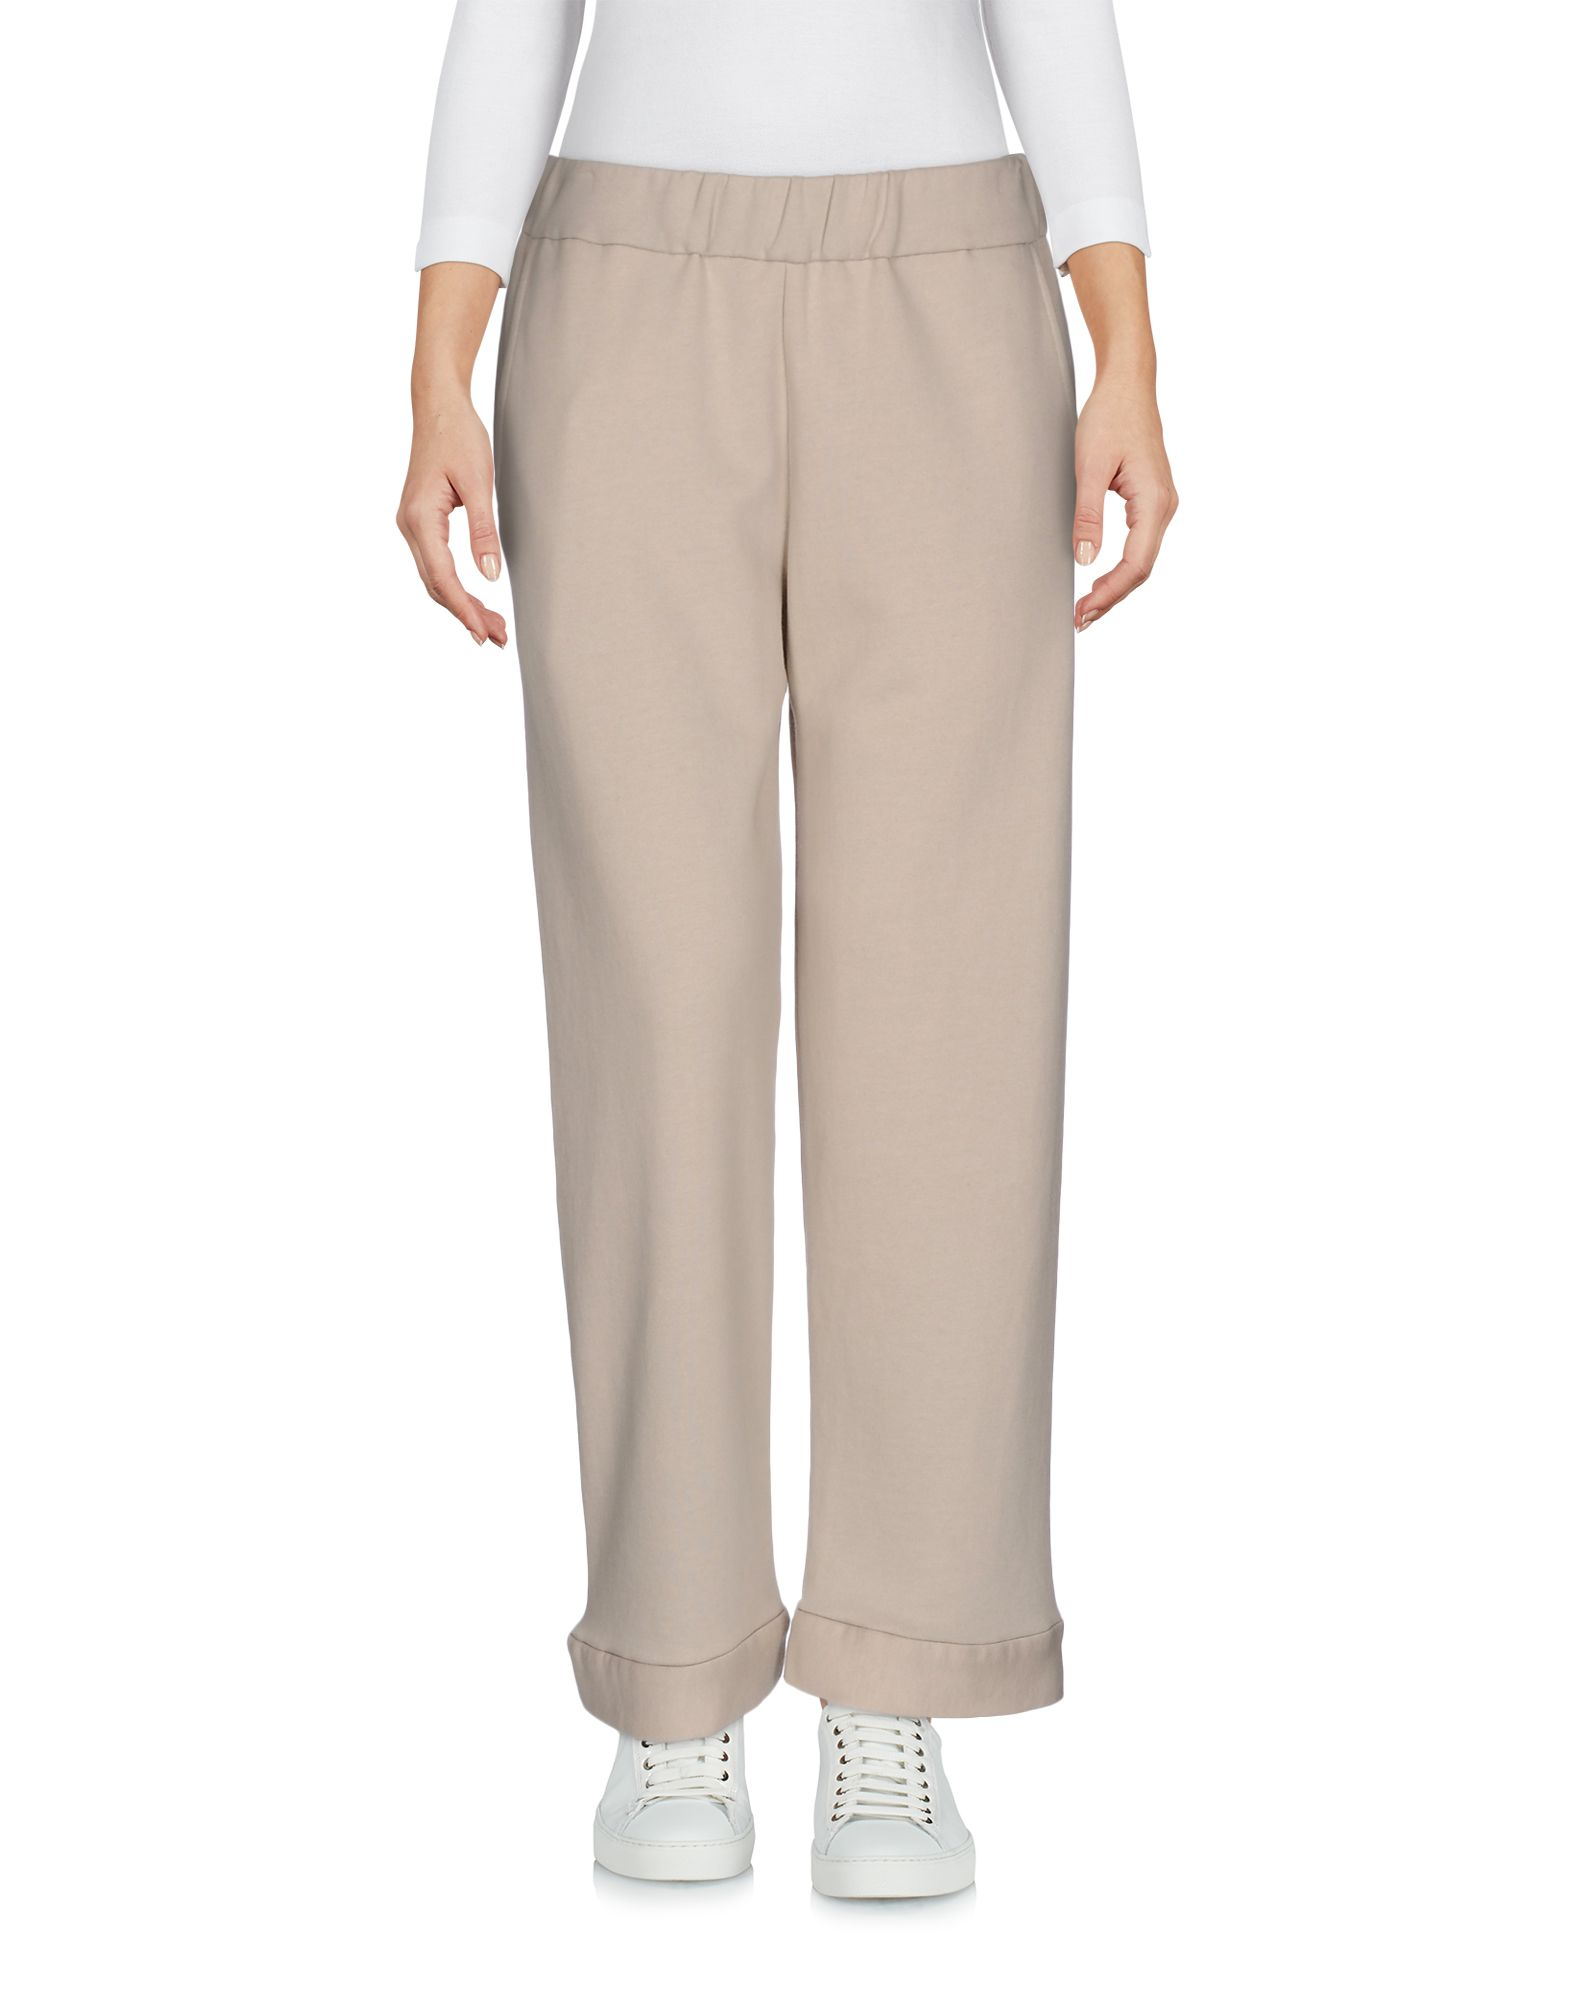 WATER Cropped Pants & Culottes in Beige